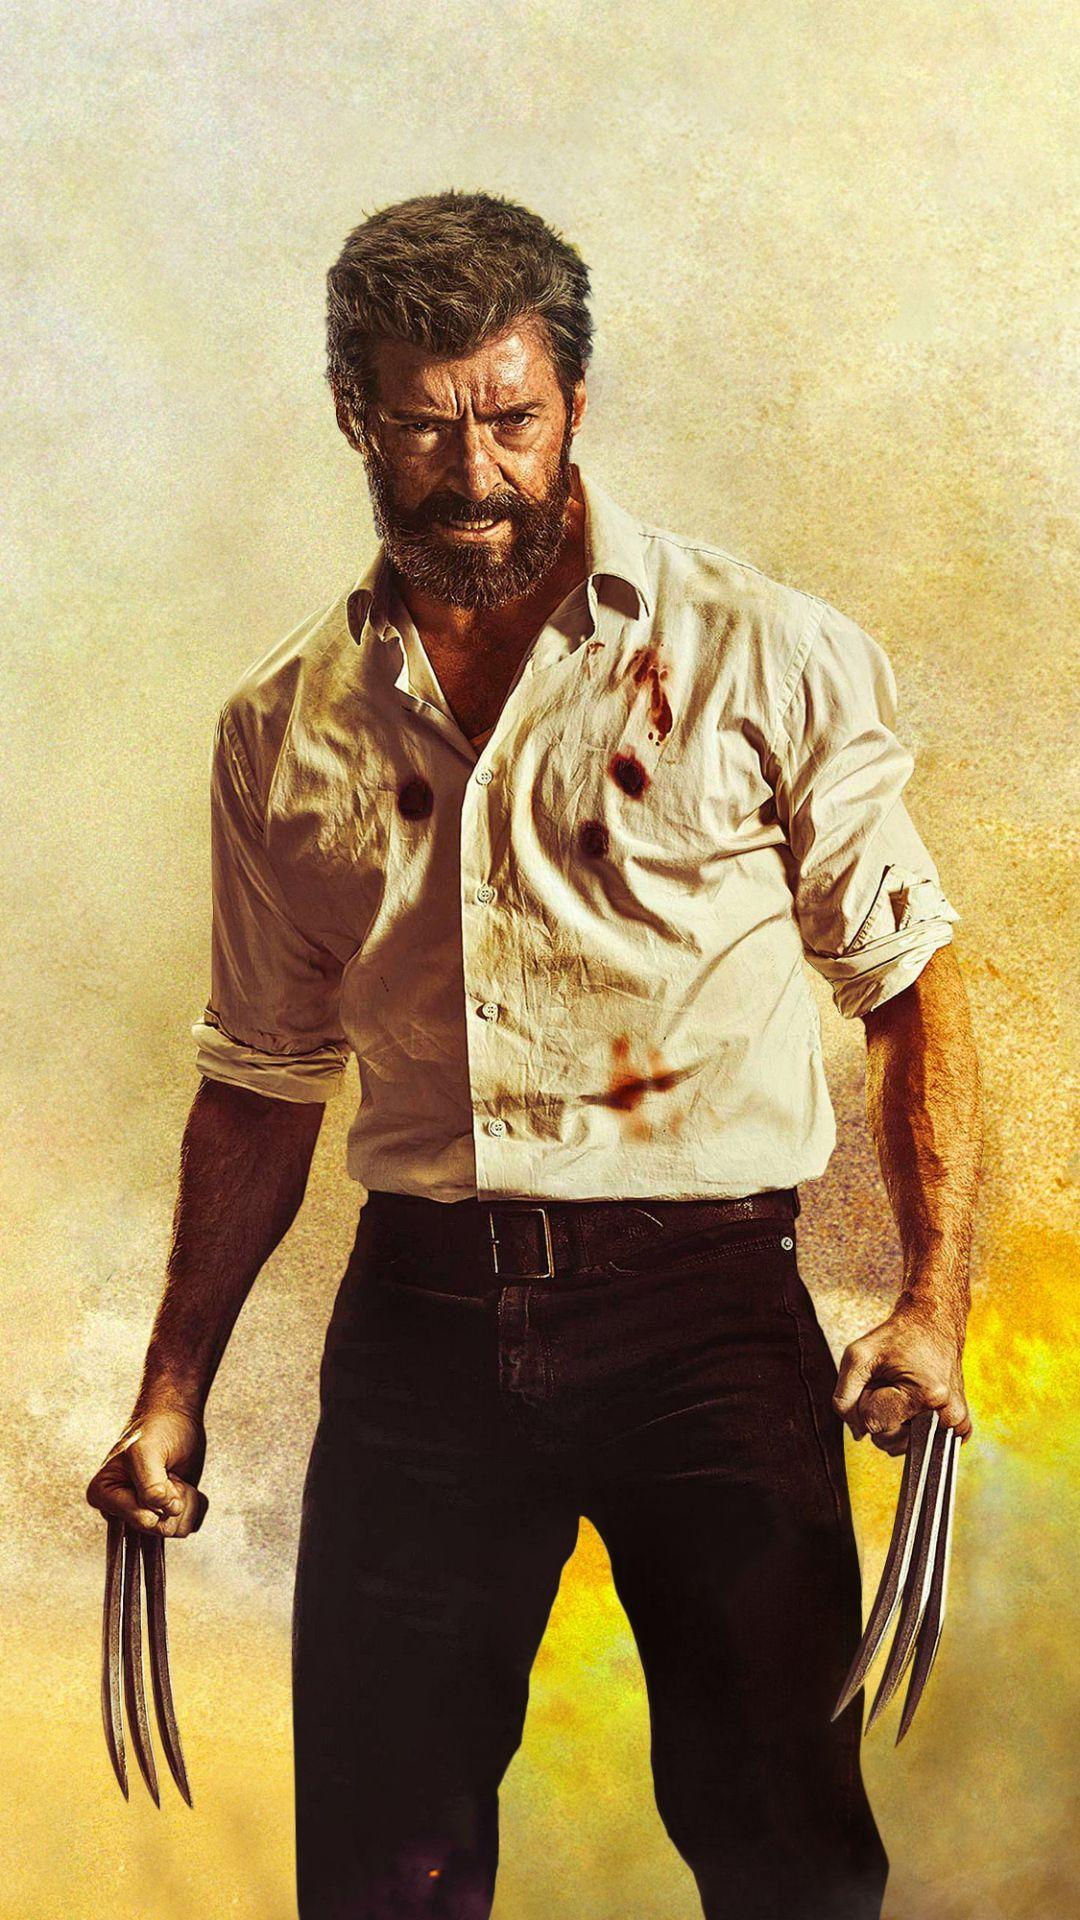 1080x1920 X Men Wolverine Character #8075 Wallpaper | Alpine Bistro